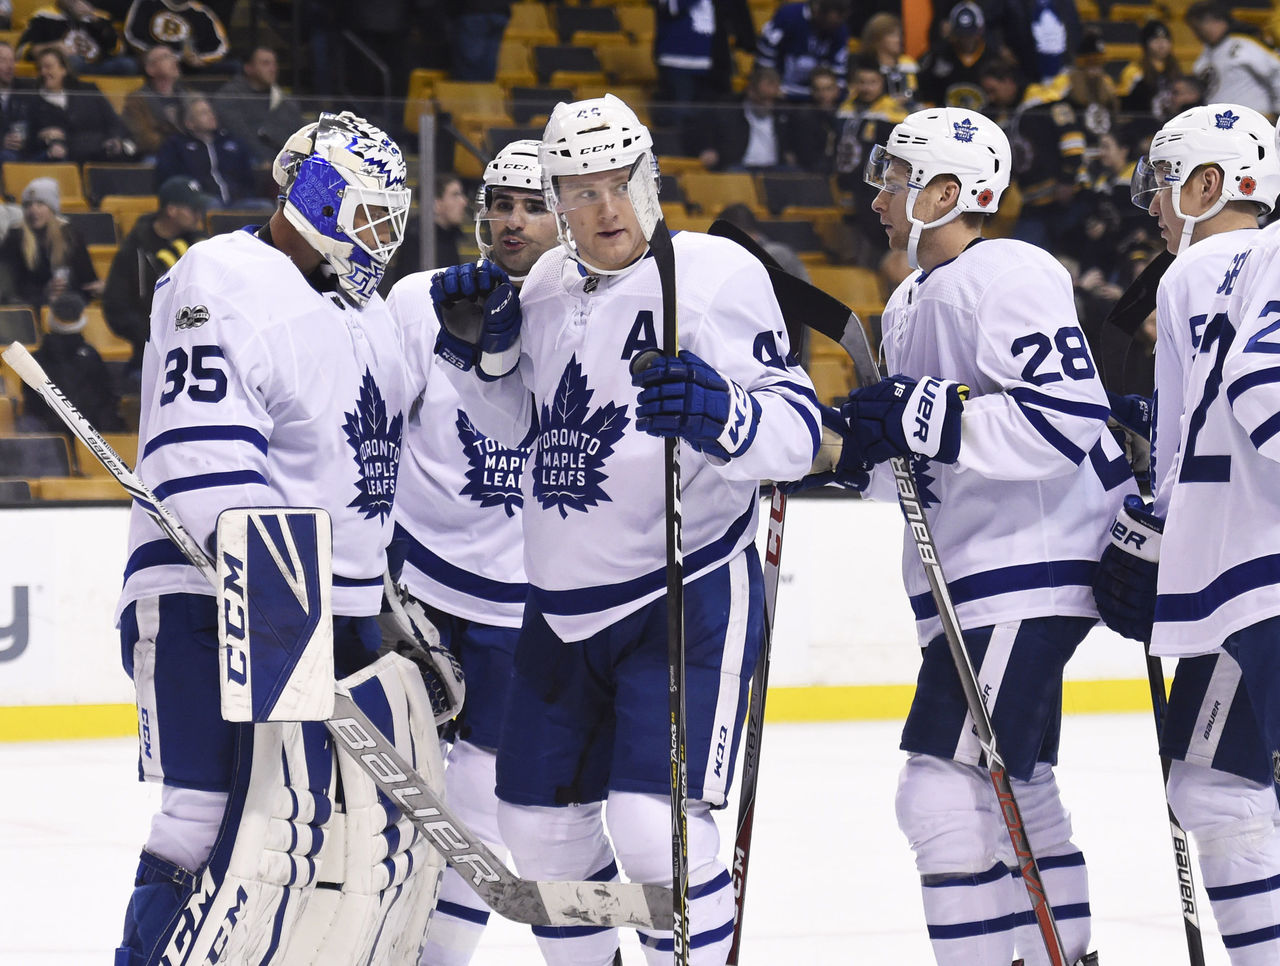 Cropped 2017 11 12t031842z 233605318 nocid rtrmadp 3 nhl toronto maple leafs at boston bruins